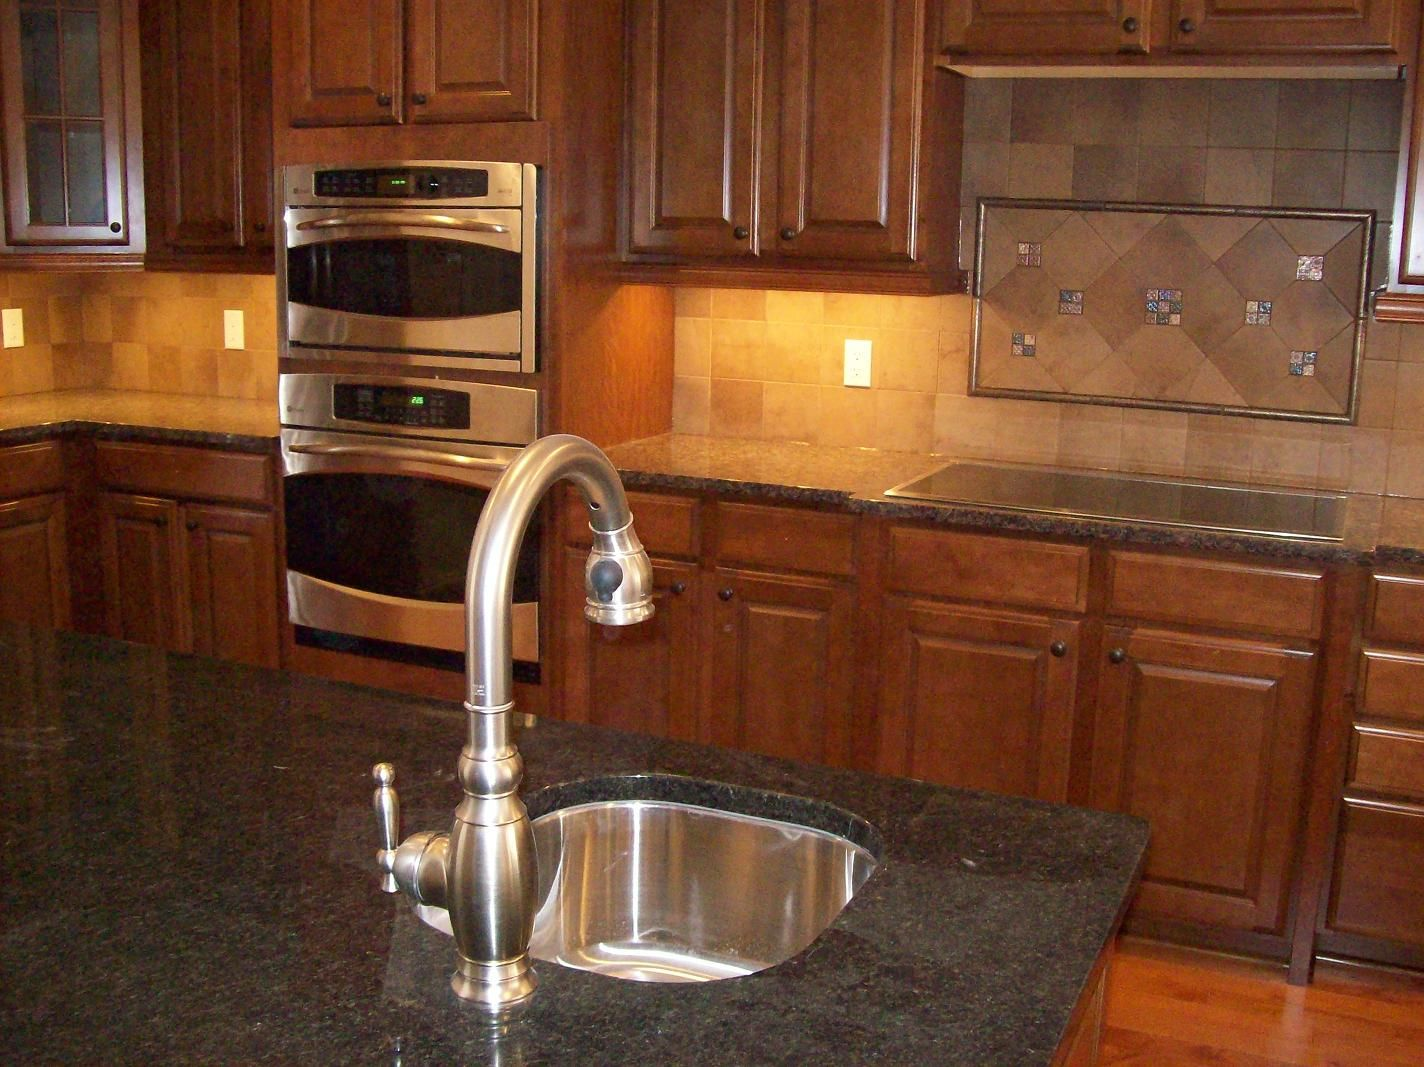 10 Simple Backsplash Ideas for Your Kitchen Backsplash Ideas View